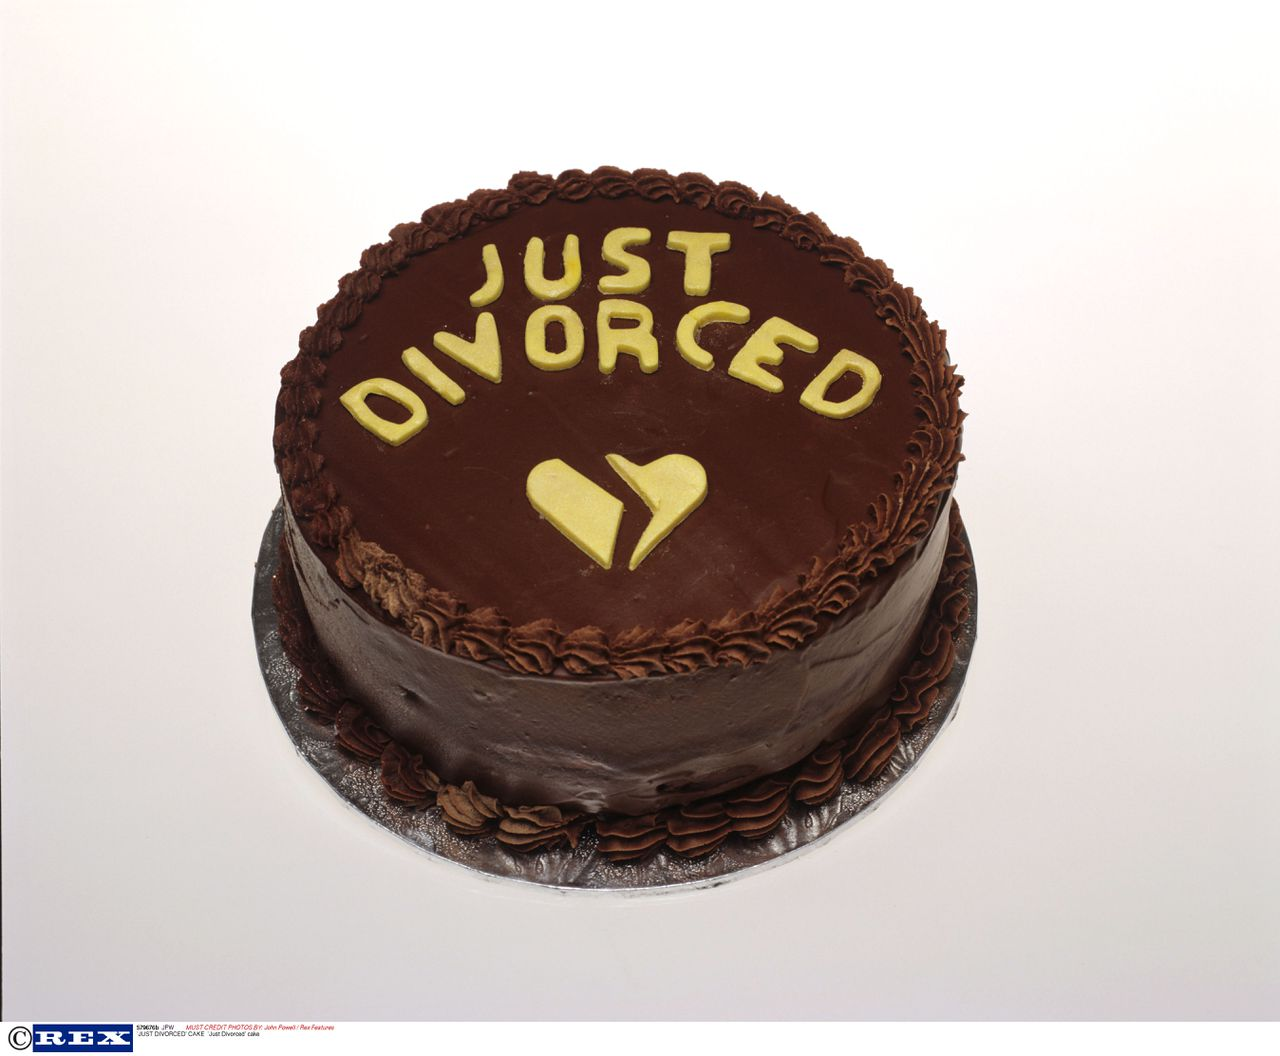 Mandatory Credit: Photo By John Powell / Rex Features 'Just Divorced' cake 'JUST DIVORCED' CAKE